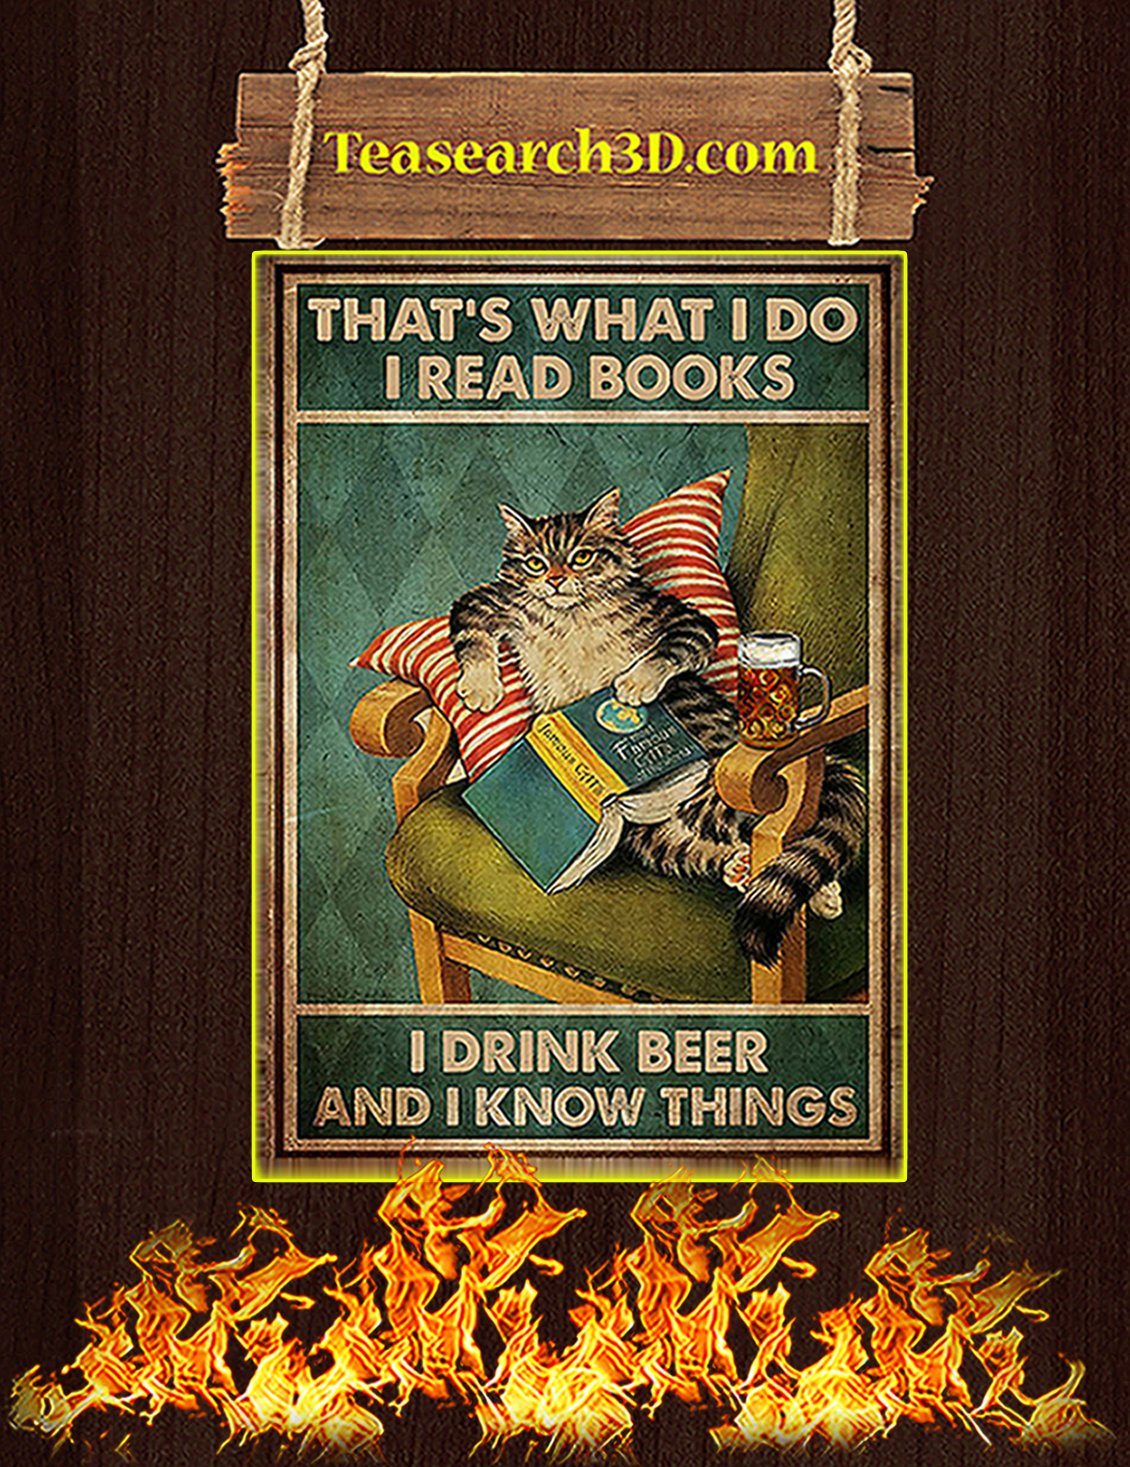 Cat that's what I do I read books I drink beer and I know things poster A3